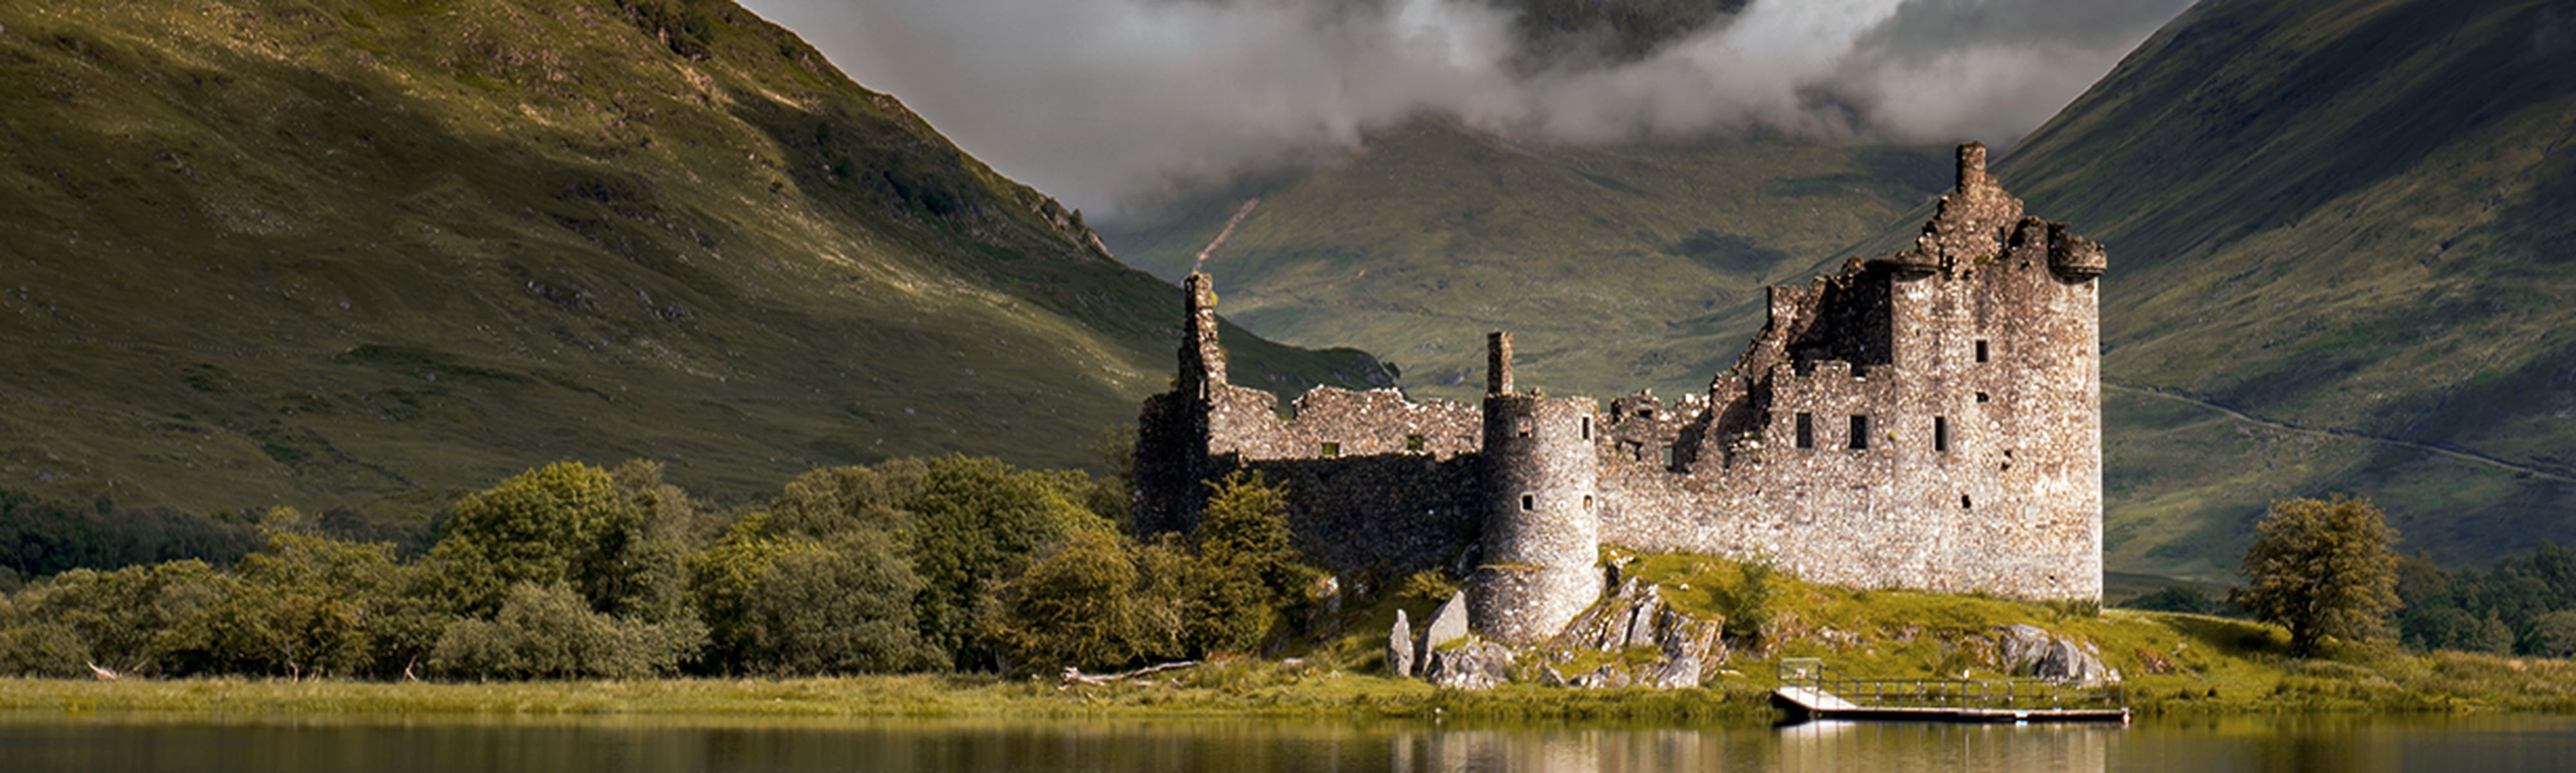 Kilchurn Castle in Loch Awe, Highlands, Scotland